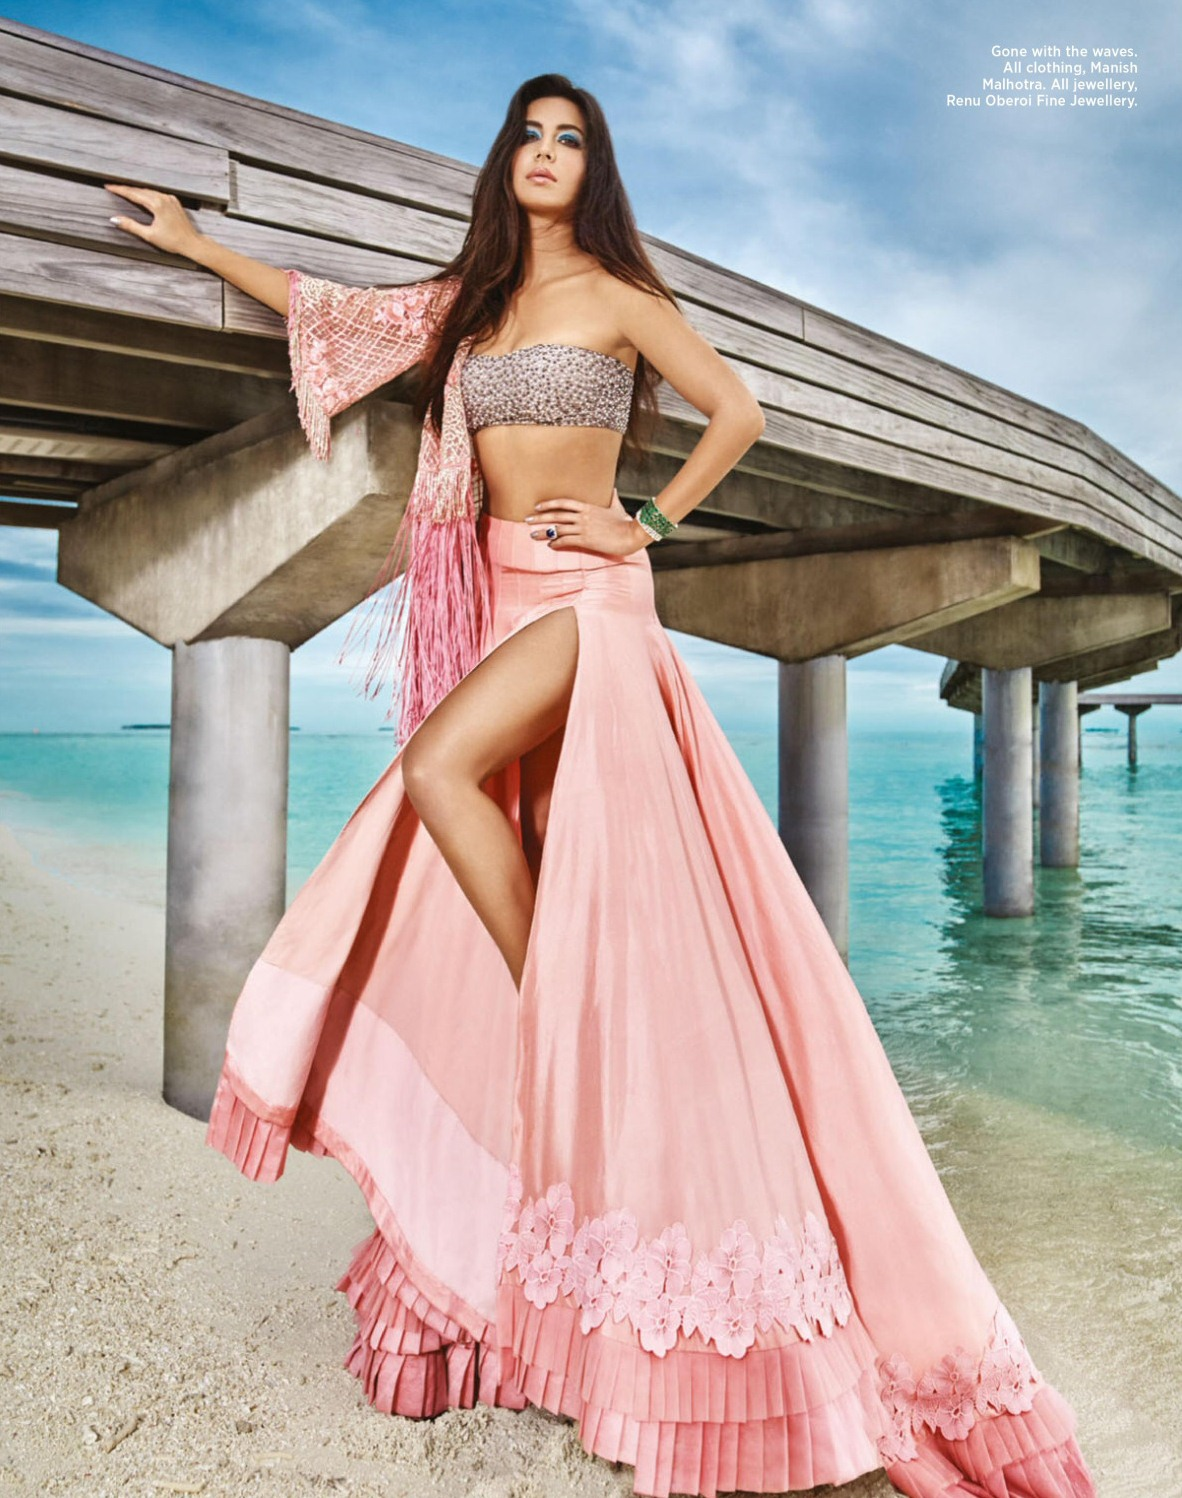 Katrina 4 - Katrina Kaif Leg Split Gown and Choli Sizzling ...